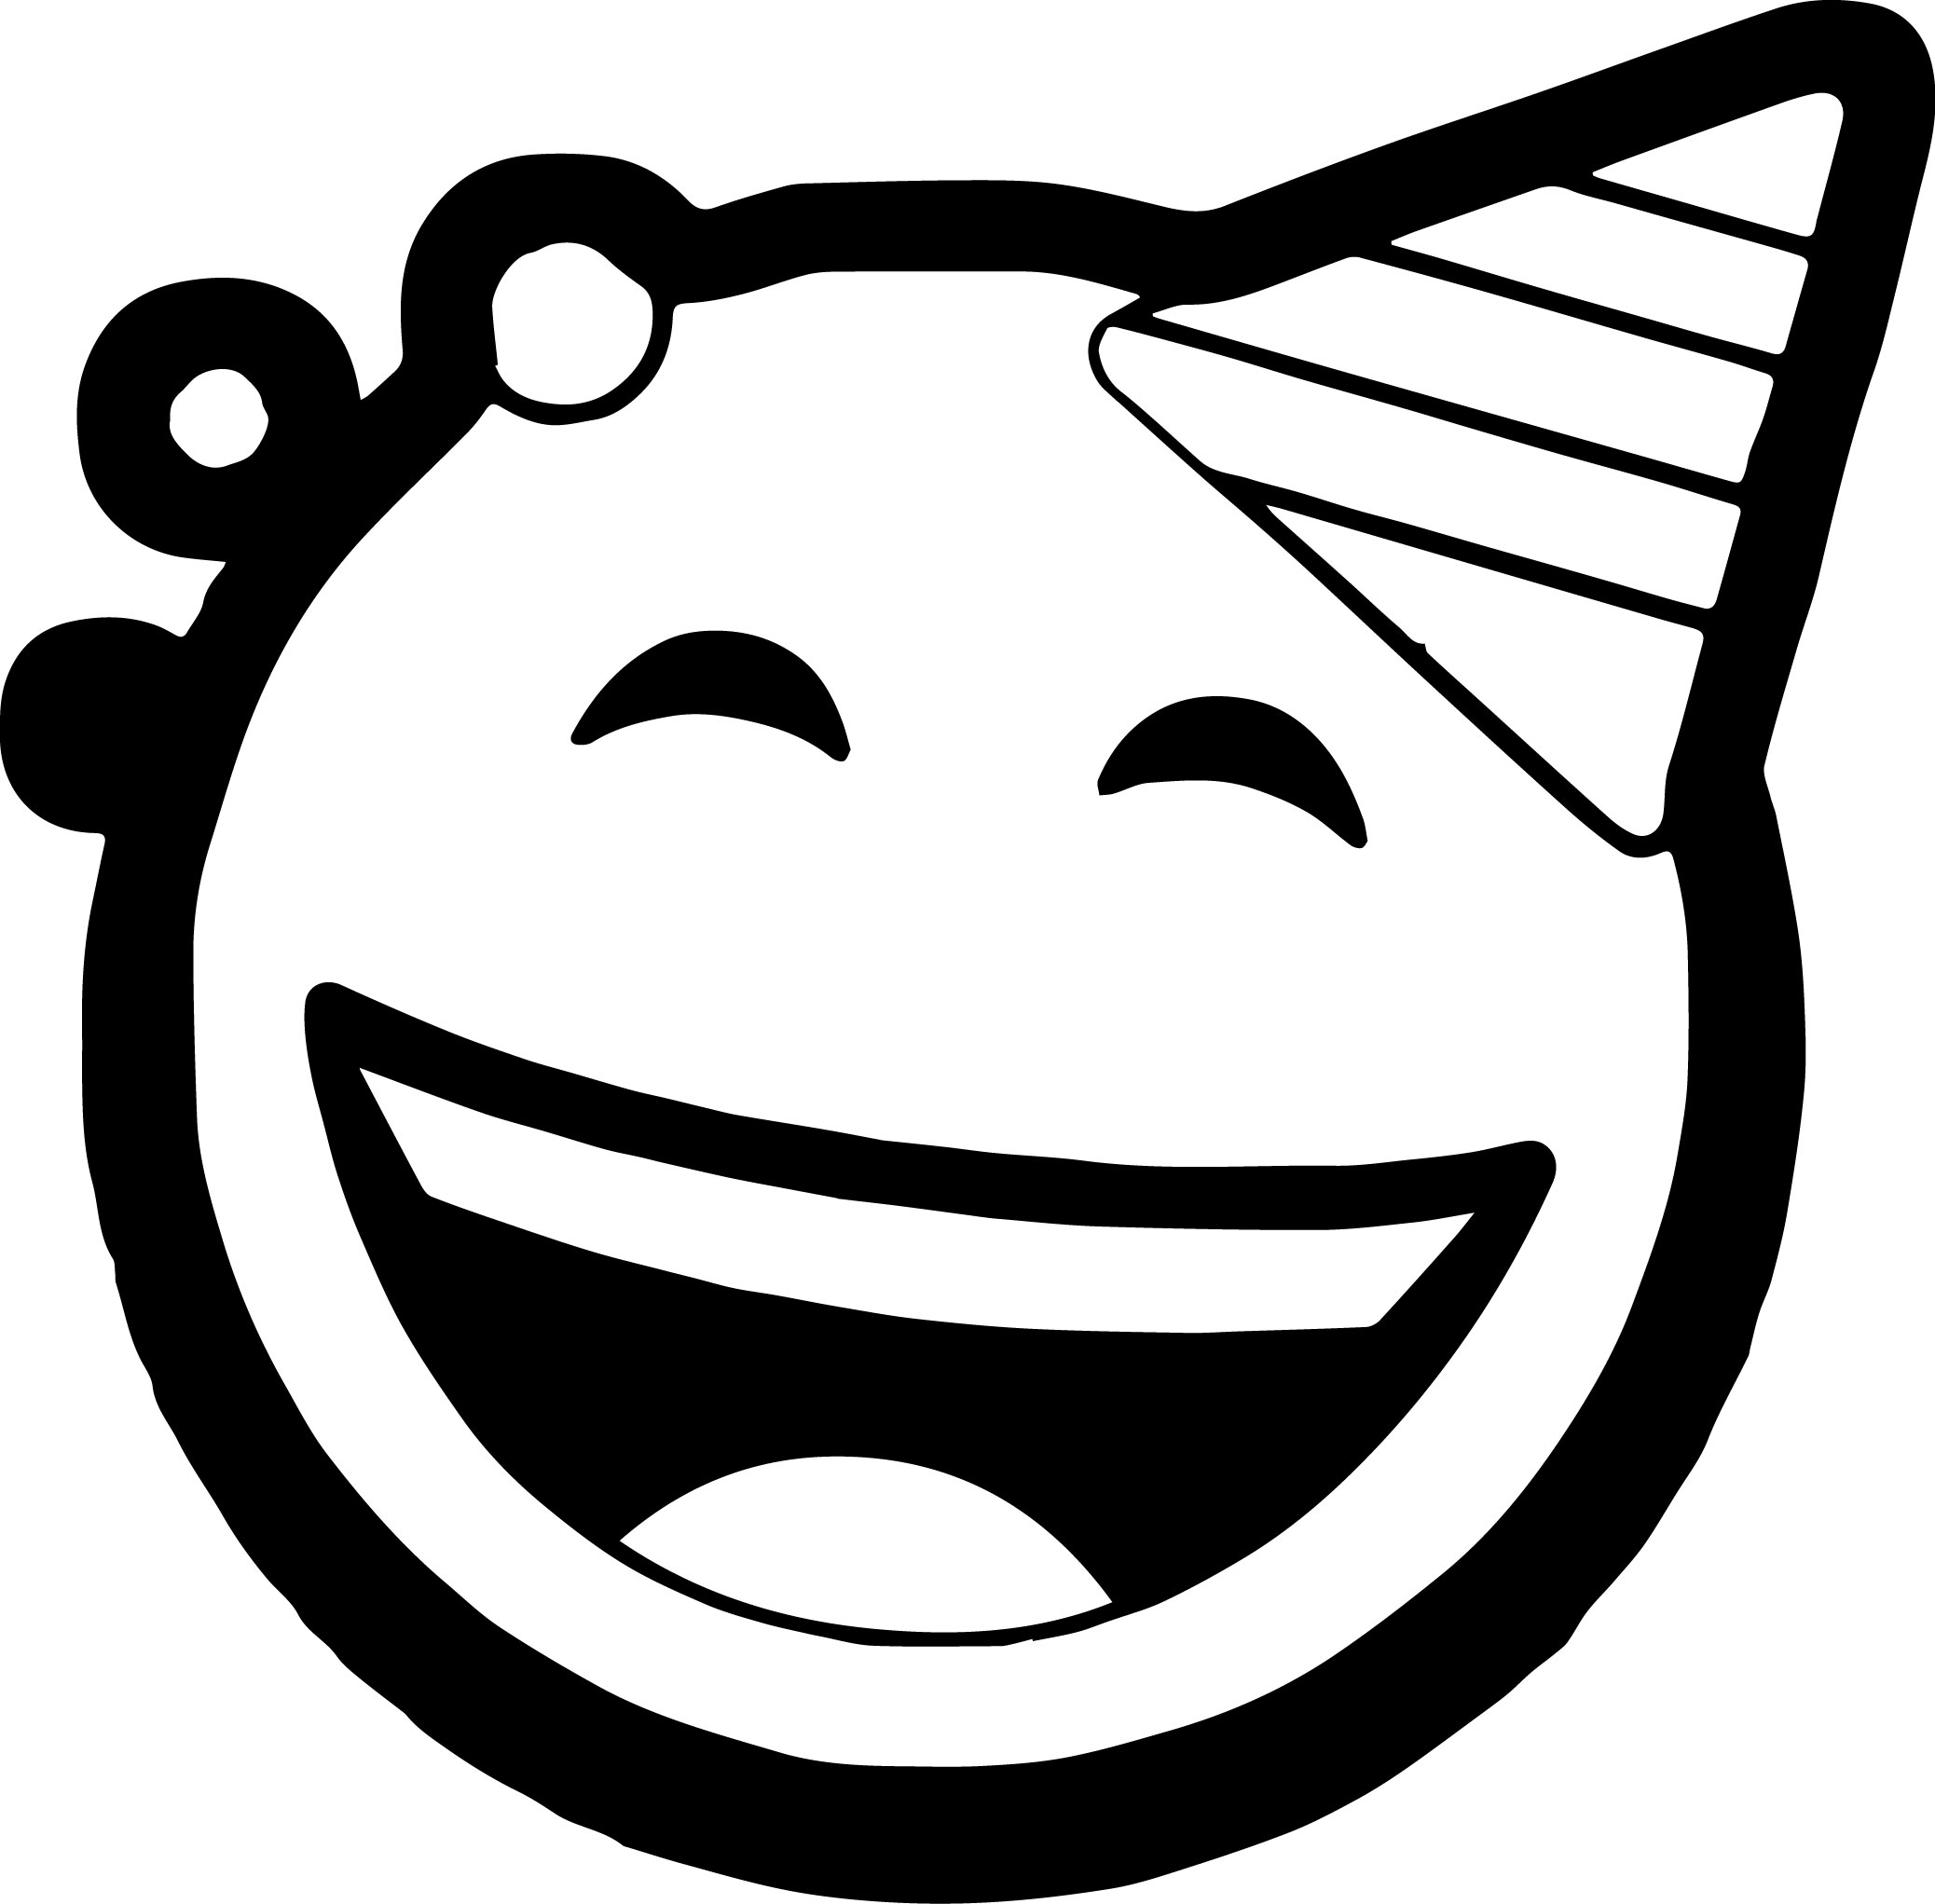 Circle Coloring Page - Celebration Circle Face Emoticons Coloring Page